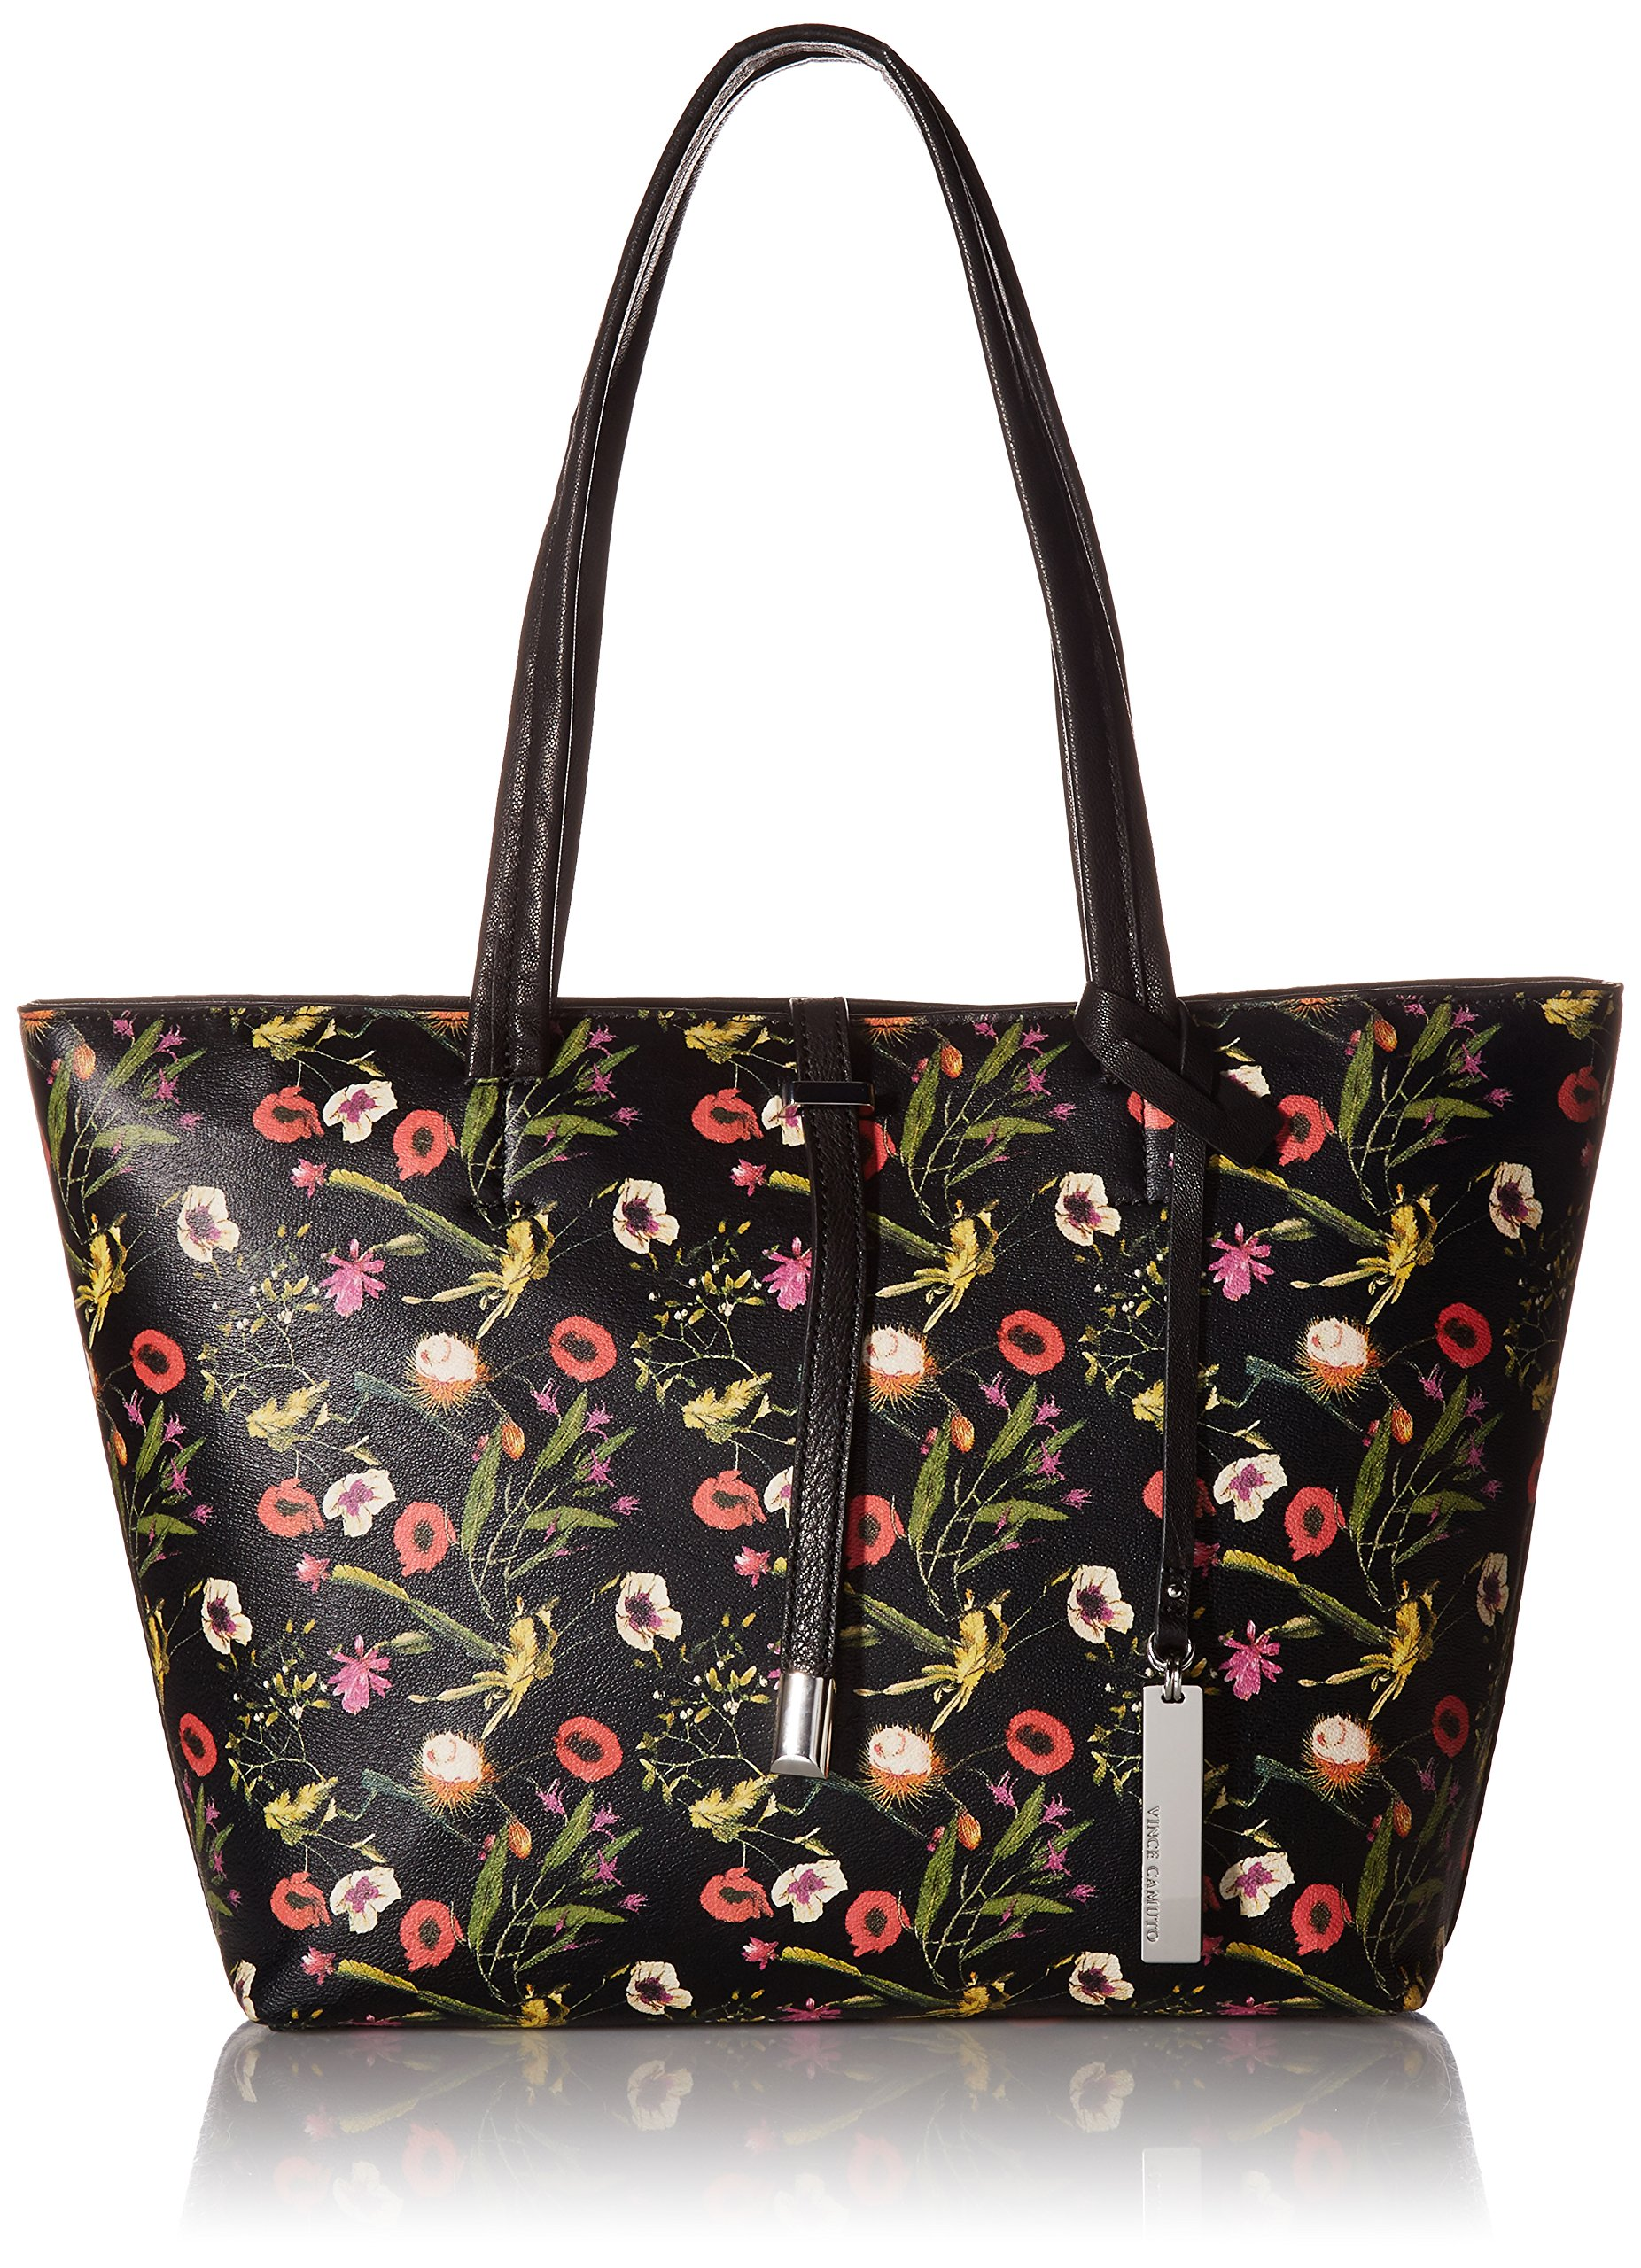 Vince Camuto Leila Small Tote, Black/Multi by Vince Camuto (Image #1)